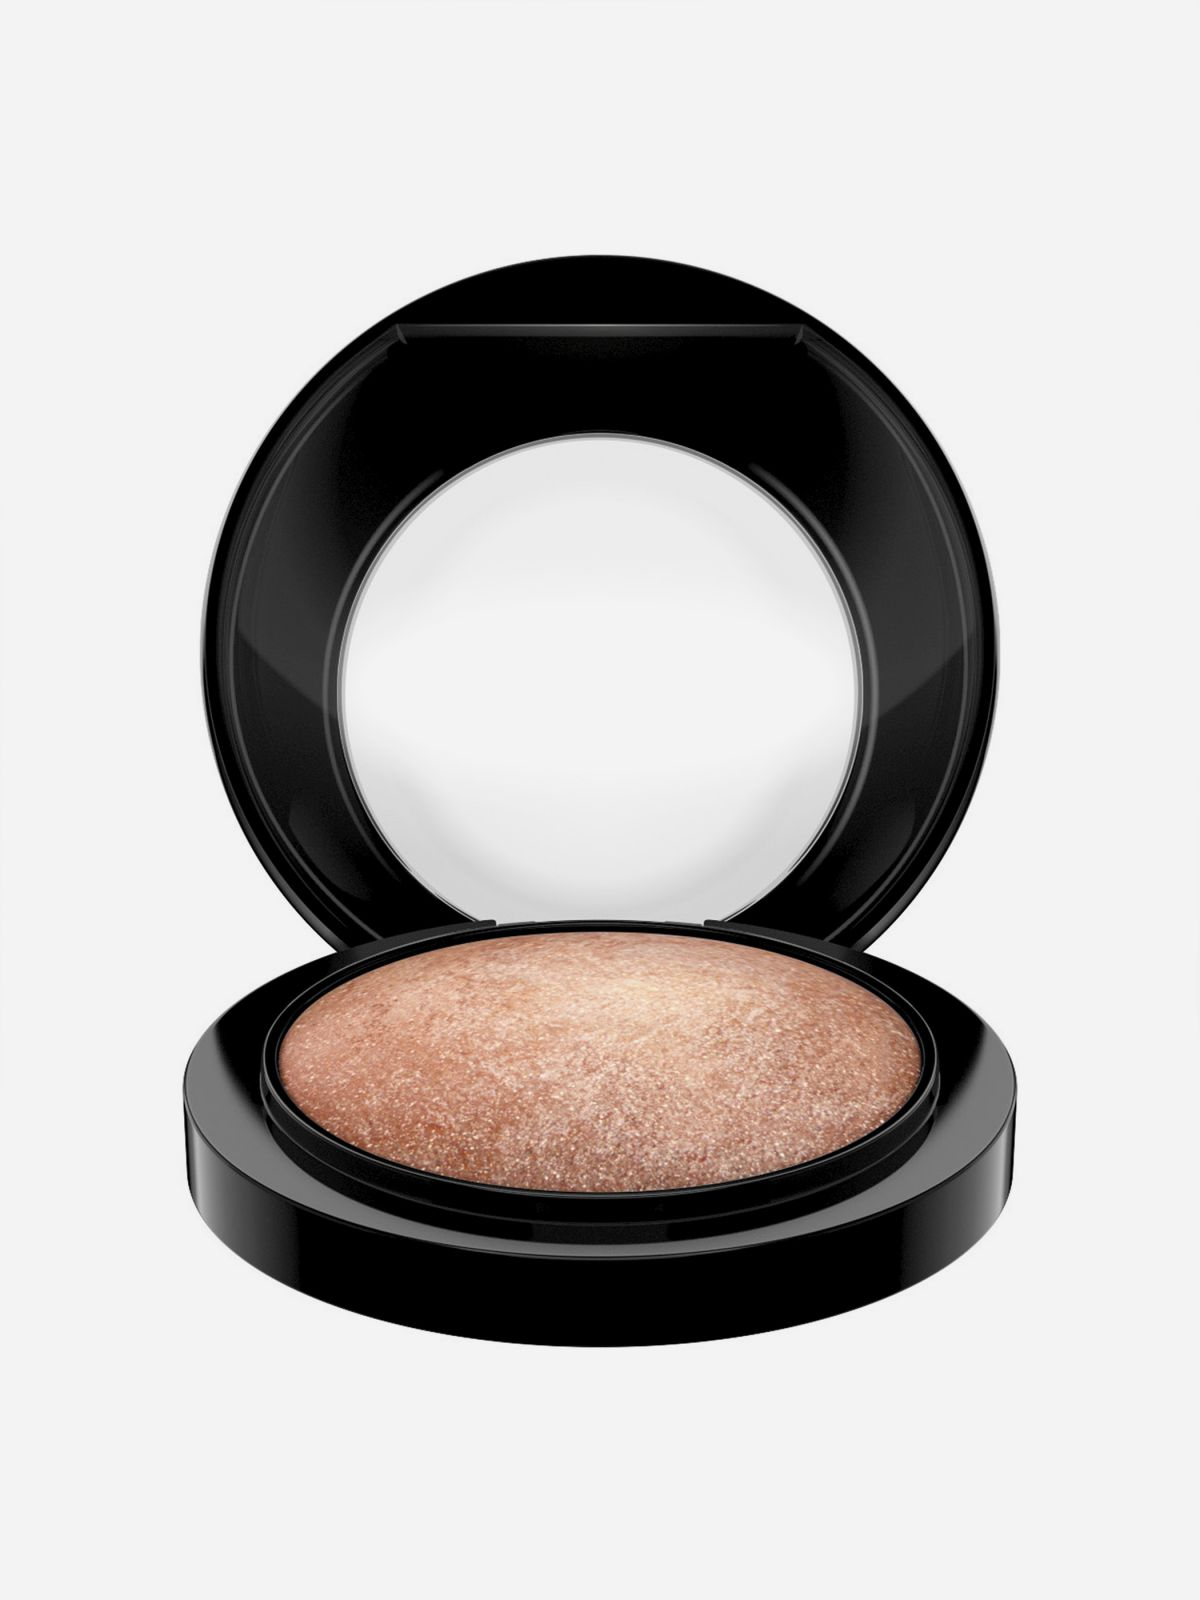 פודרת מינרלים Skinfinish Naturalפודרת מינרלים Skinfinish Natural של MAC